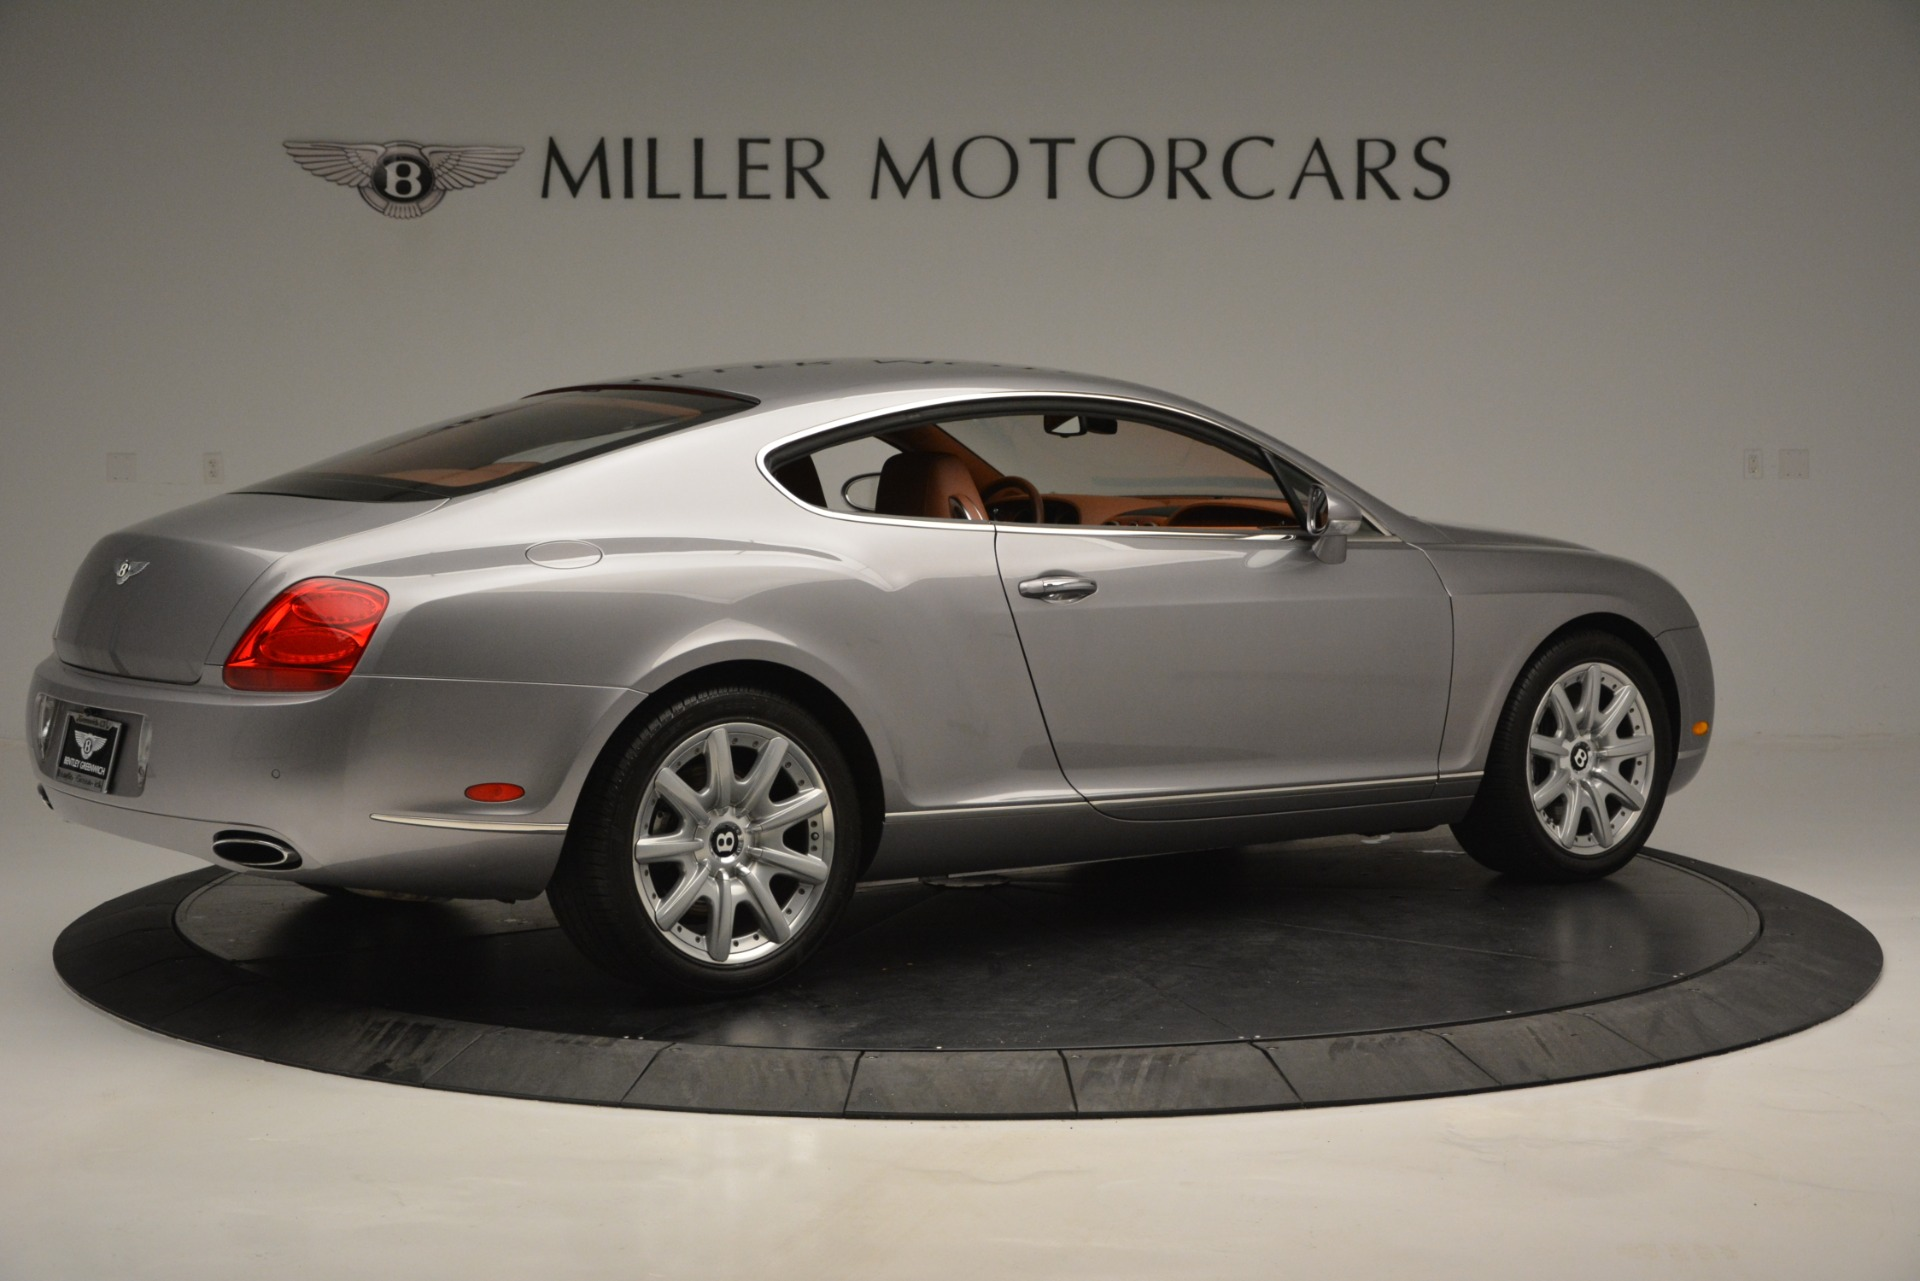 Used 2005 Bentley Continental GT GT Turbo For Sale In Westport, CT 2726_p8